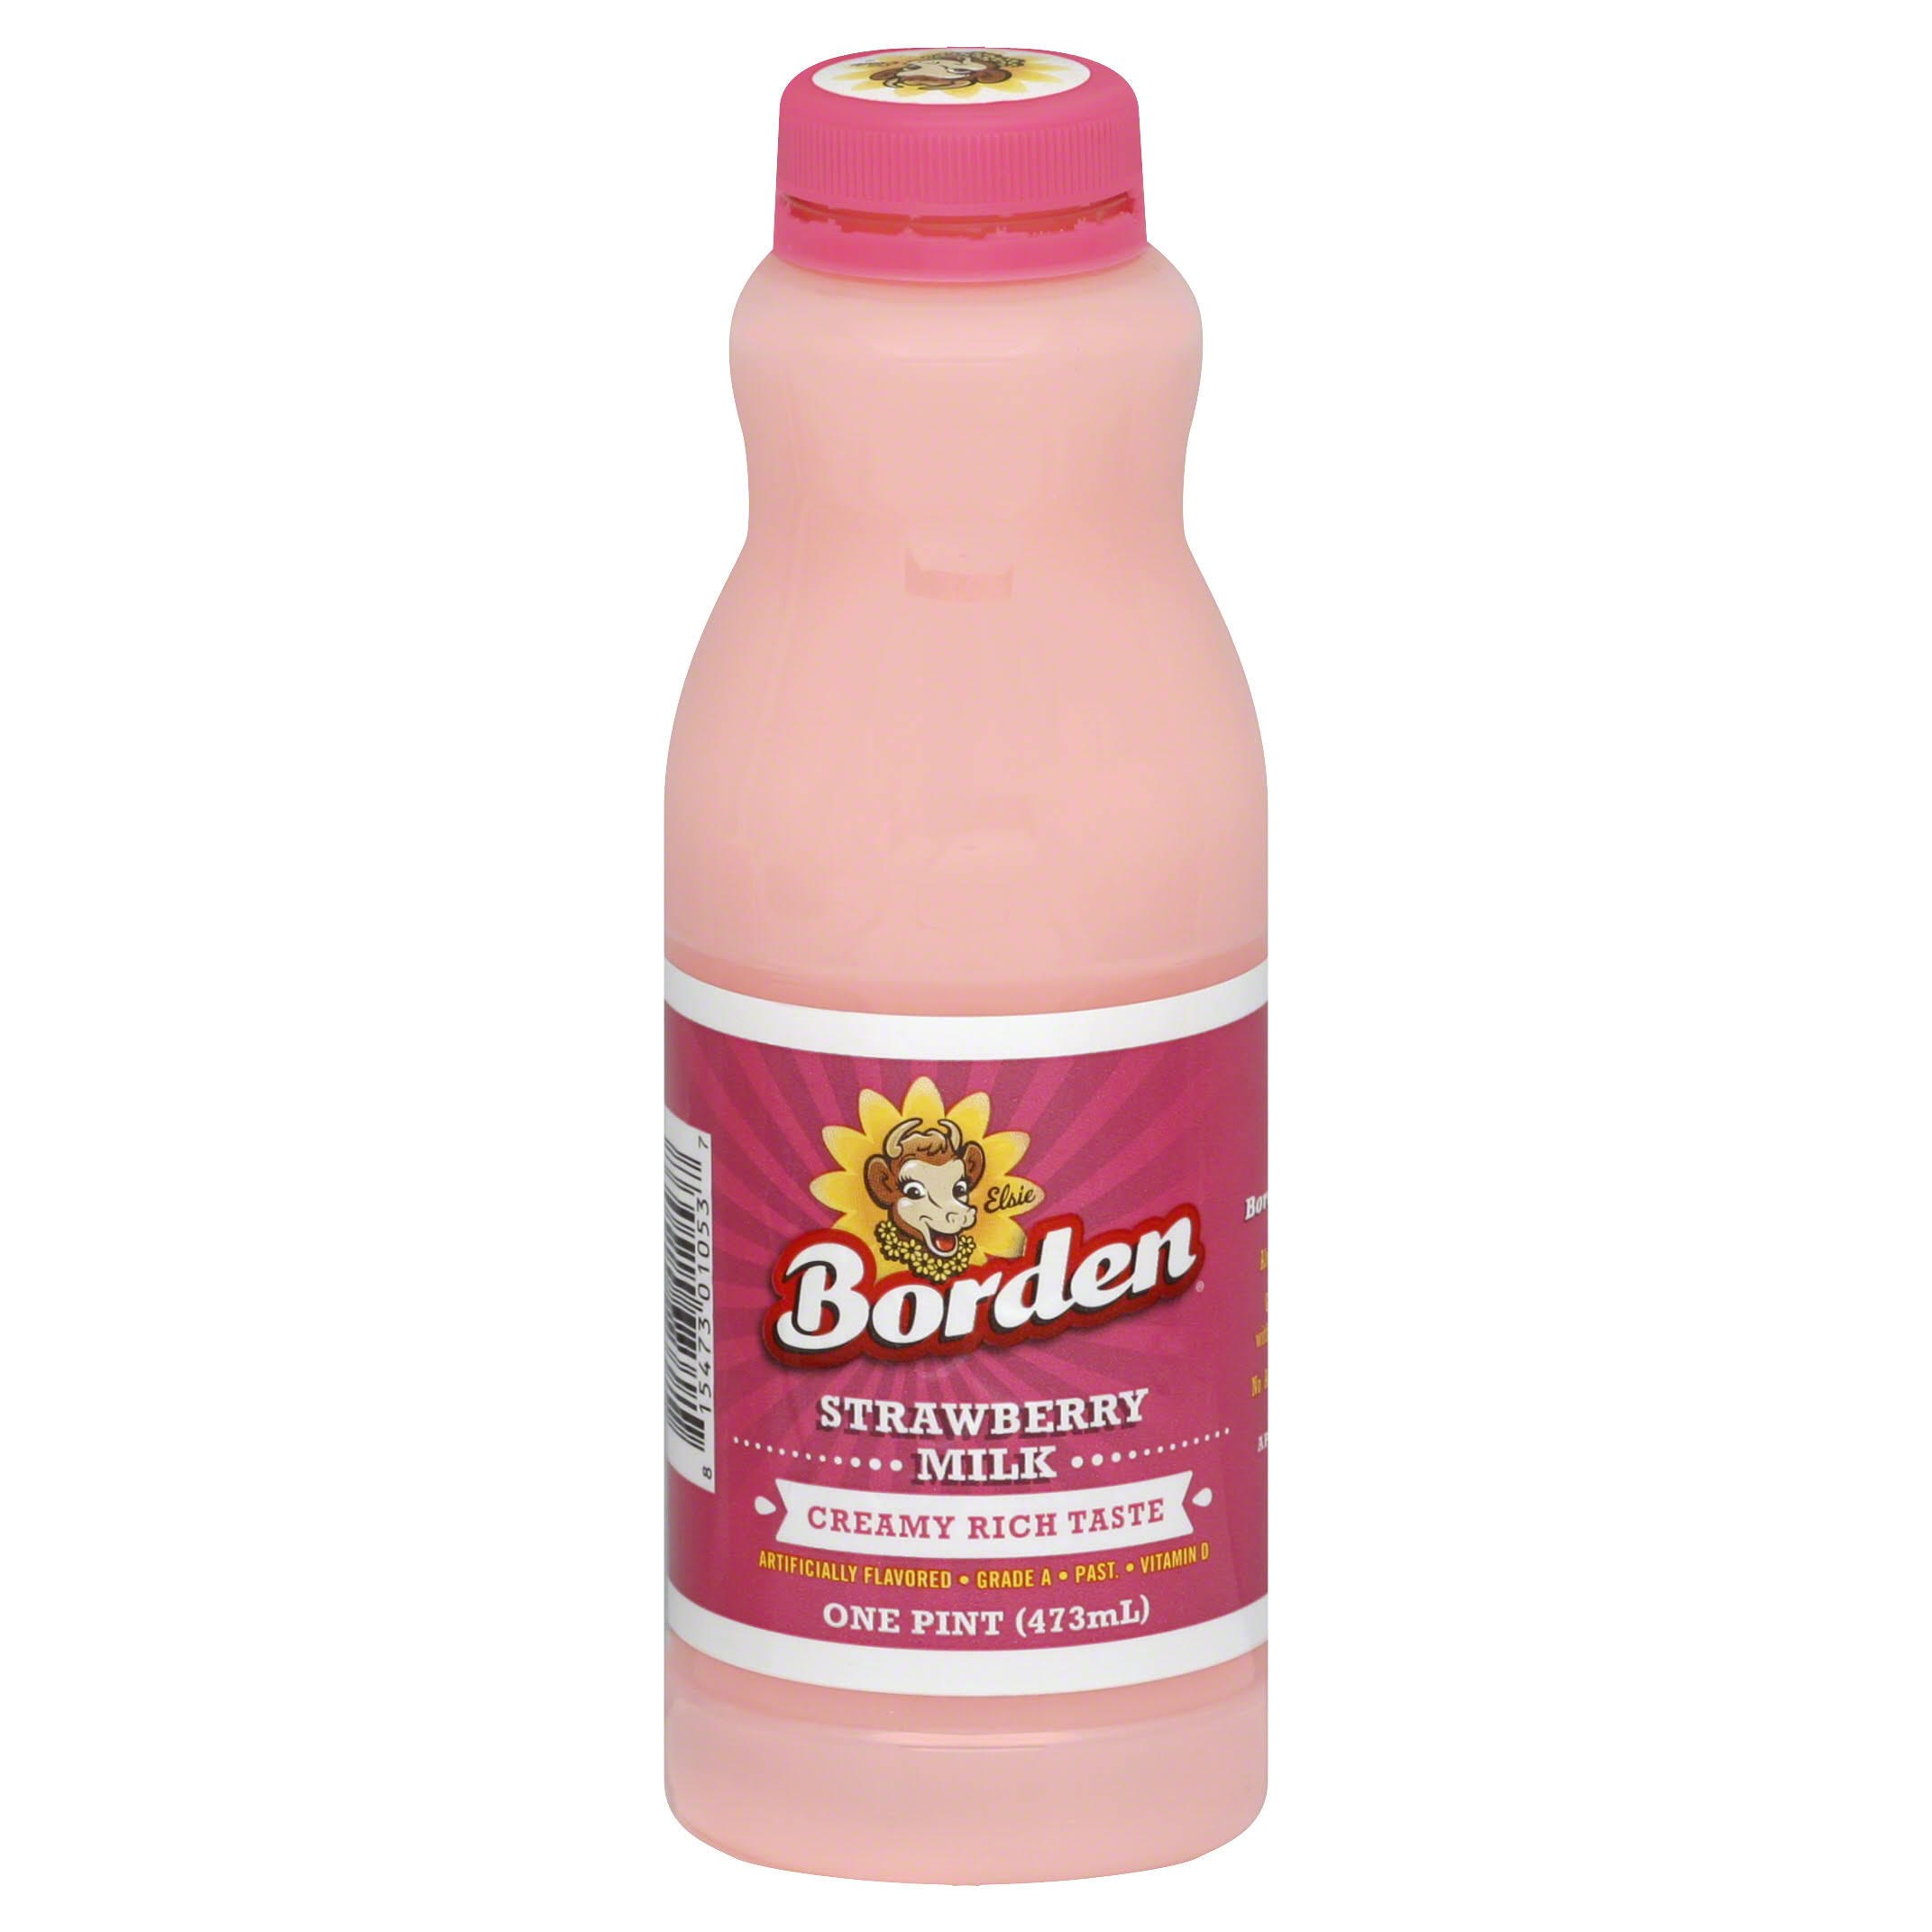 Borden Milk - Strawberry, 1 Pint